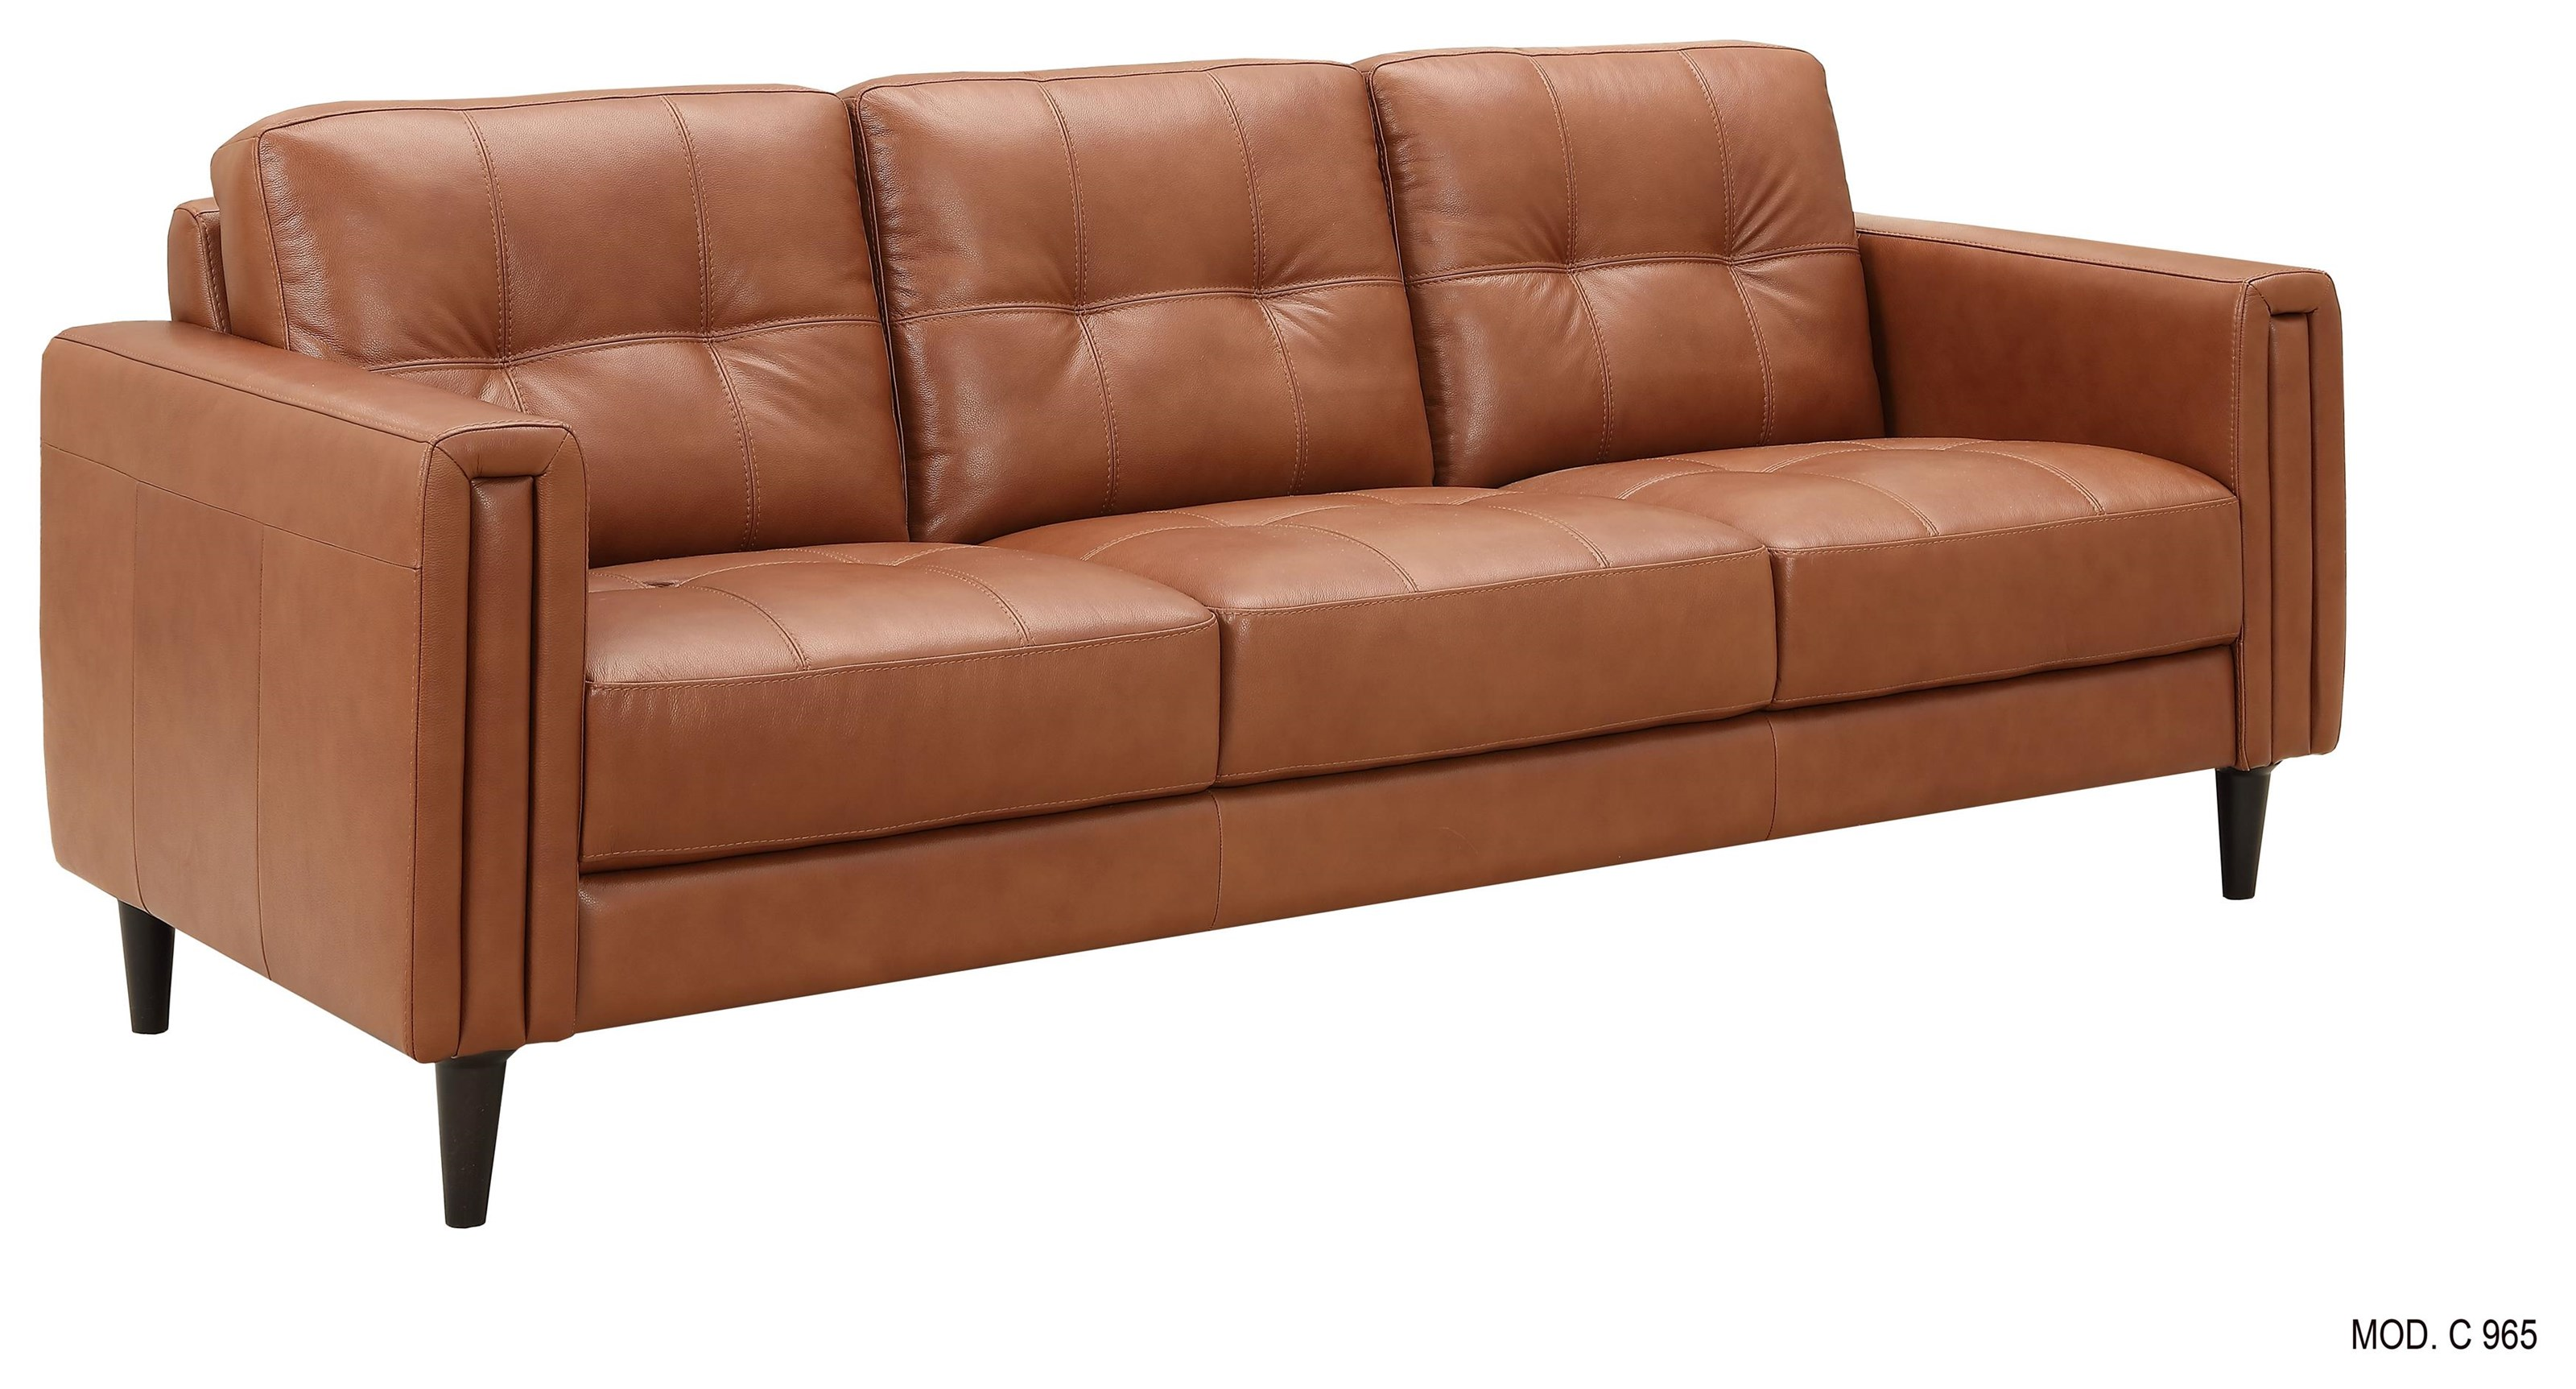 C965 Leather Sofa by Chateau D'Ax at Baer's Furniture